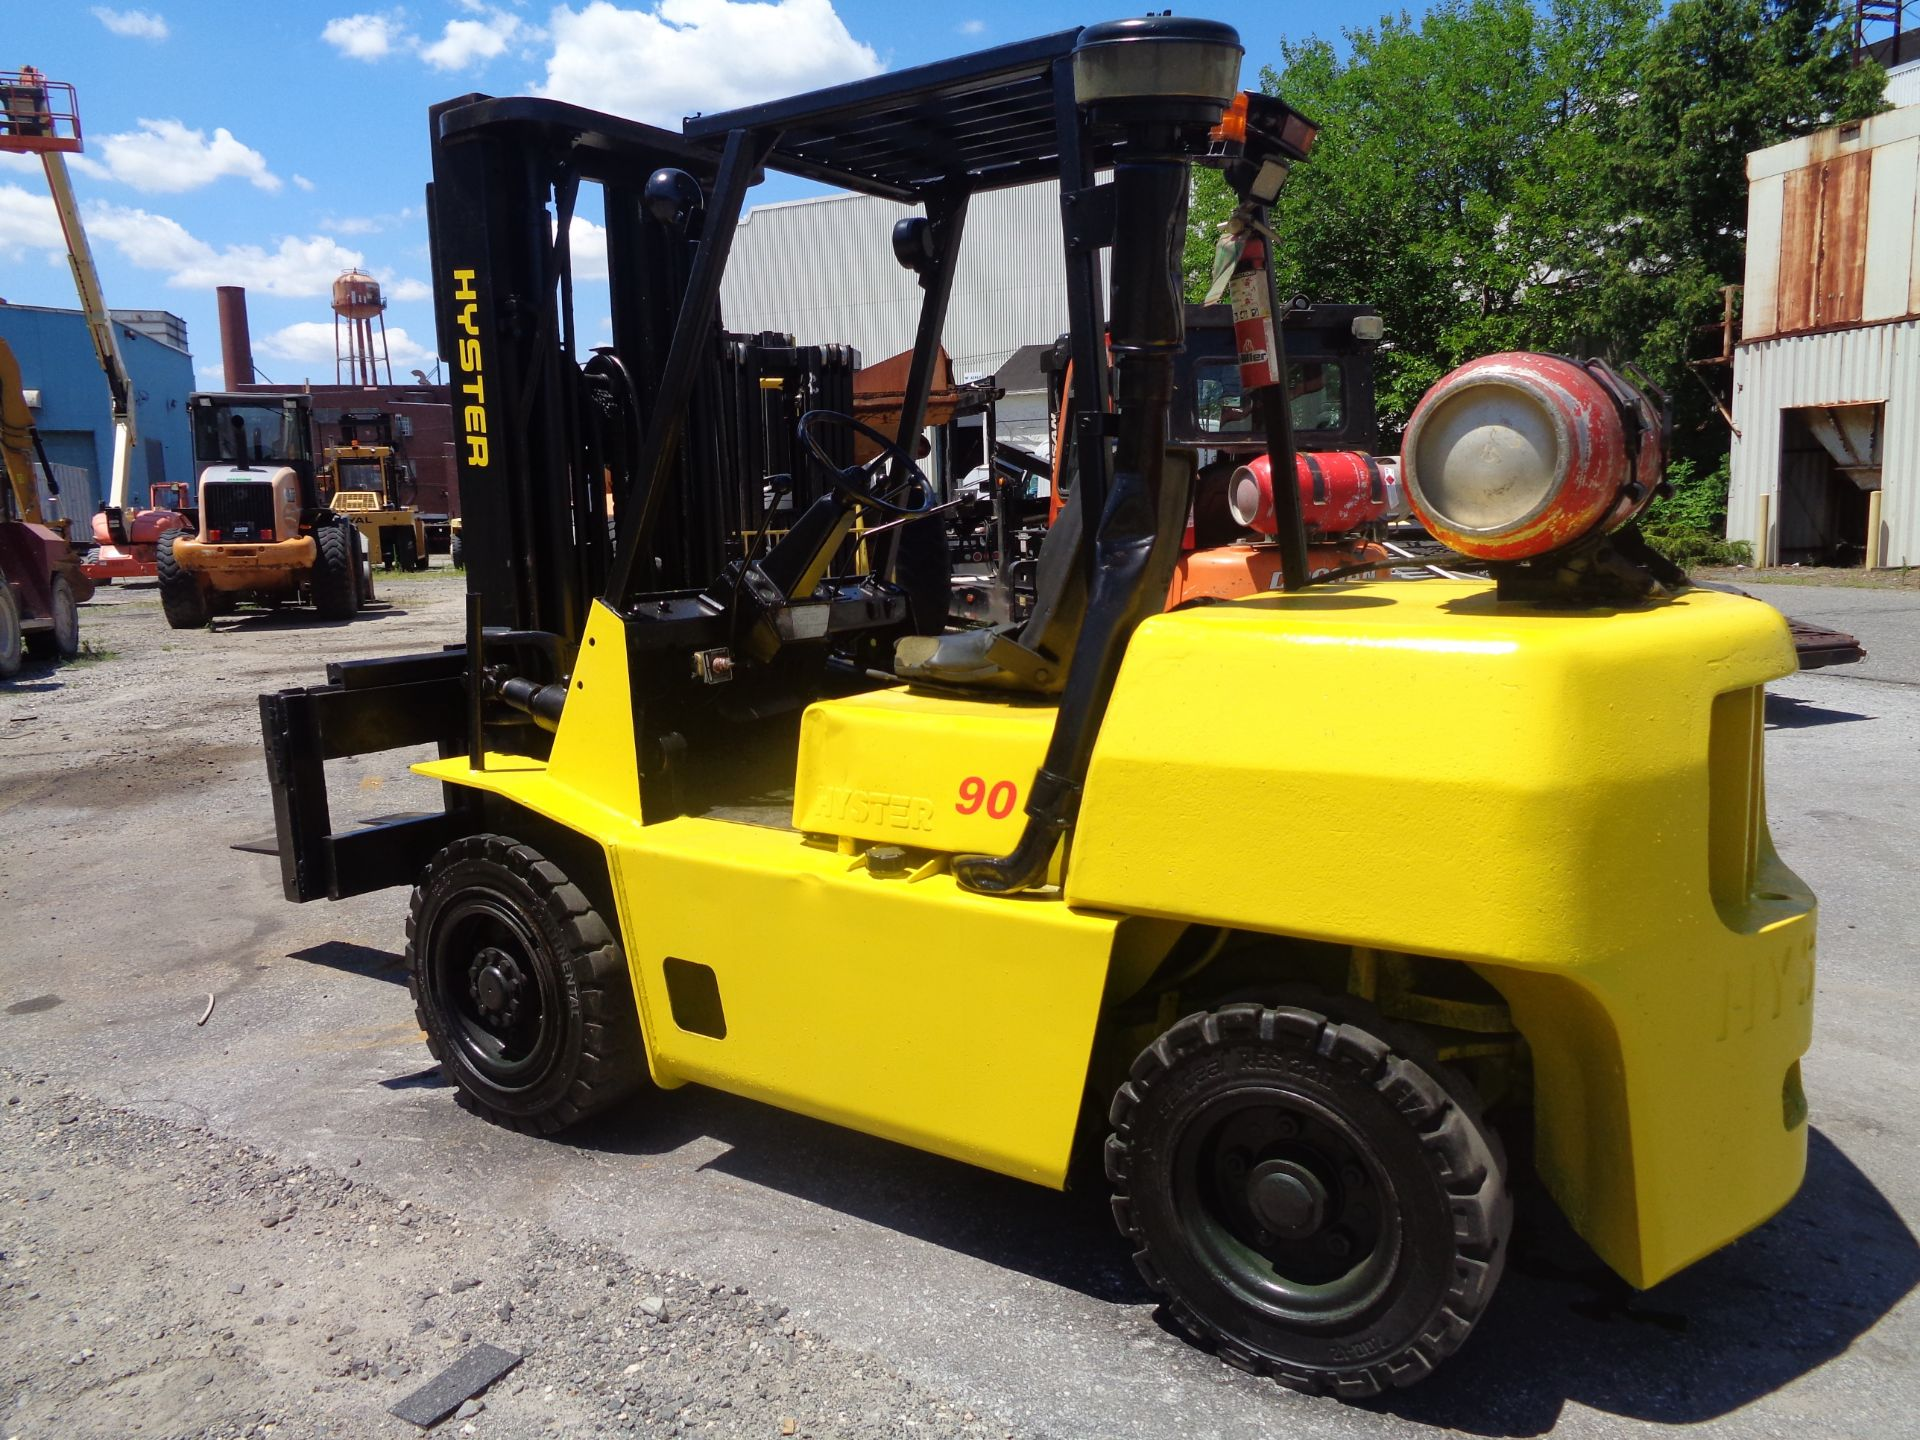 Hyster H90XLS Forklift 9,000 lbs - Image 2 of 13